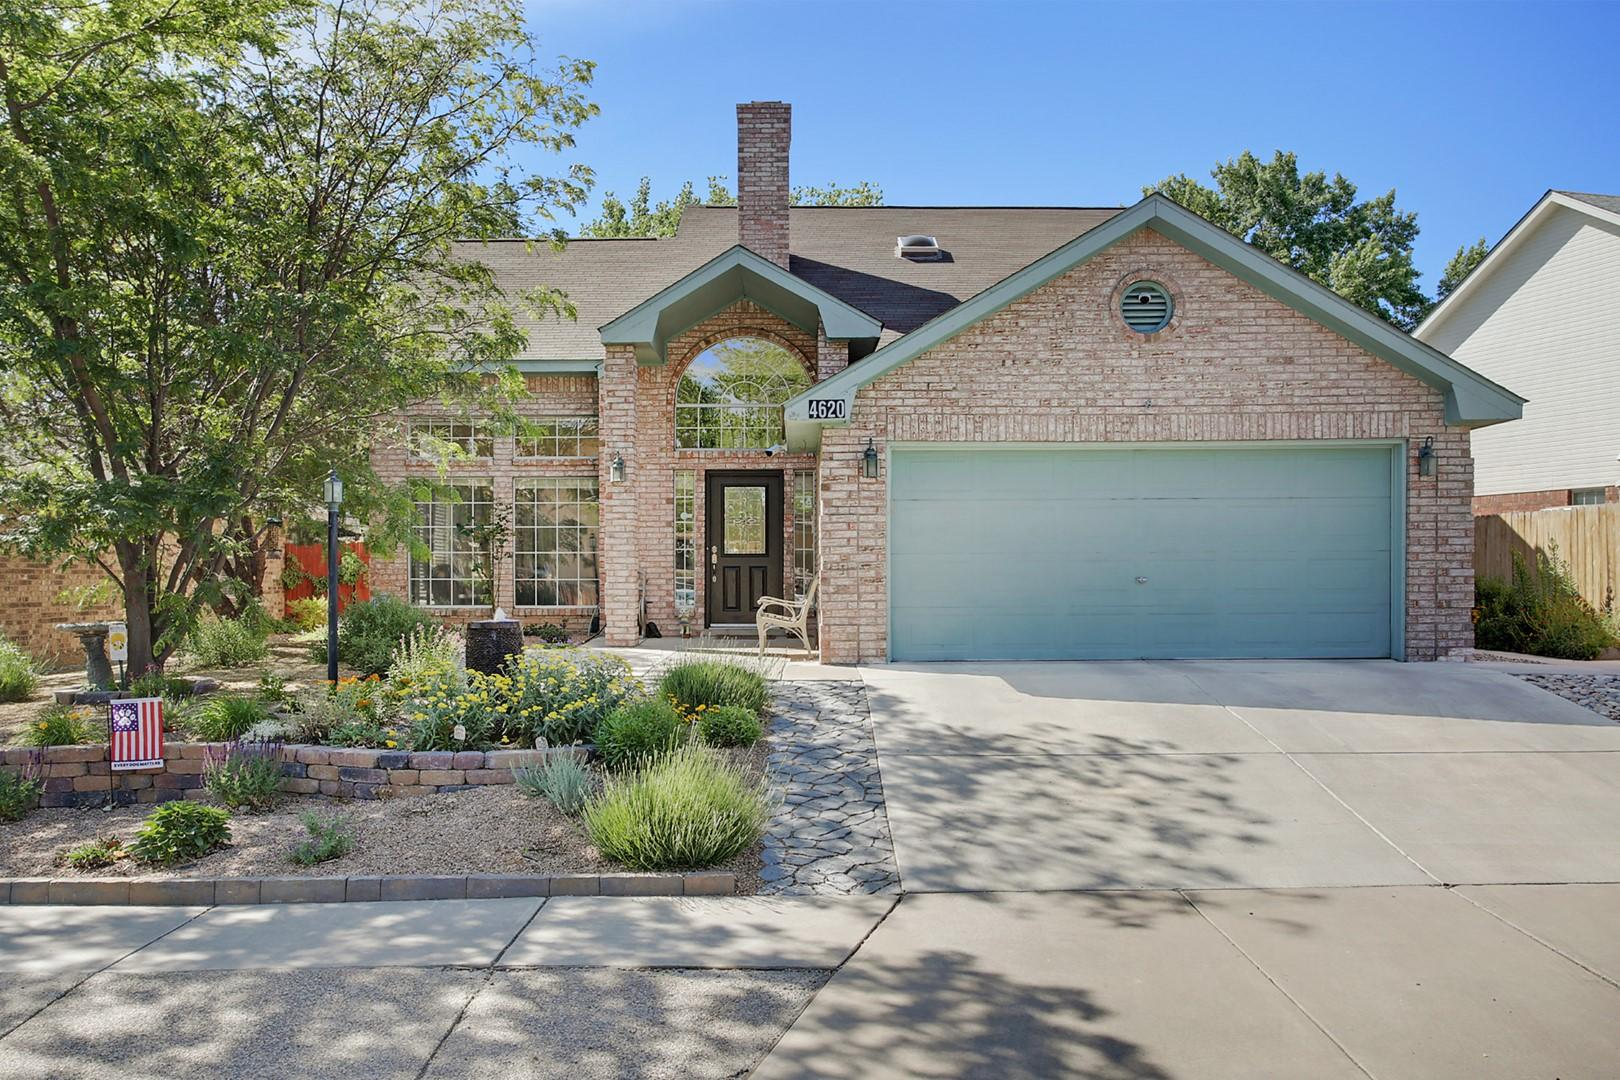 You're going to love this home in popular Taylor Ranch! This is a one owner home and these sellers have taken great care of this home & updated it beautifully!  Stay cool with refrigerated air, ceiling fans in all rooms & so much light with vaulted ceilings & clerestory windows! Granite counters in the kitchen & bathrooms!  Tiled back splashes too!  Master is on the main level with sliding door to backyard.  Master bath has double sinks, soaking tub & separate shower.  Upstairs is a spacious loft, two more bedrooms & large guest bath.  Living/dining is huge, kitchen has tons of counter space & cabinetry, breakfast nook is sunny with sliding door to large covered patio & private backyard! Ready to move into and oh so clean!!!